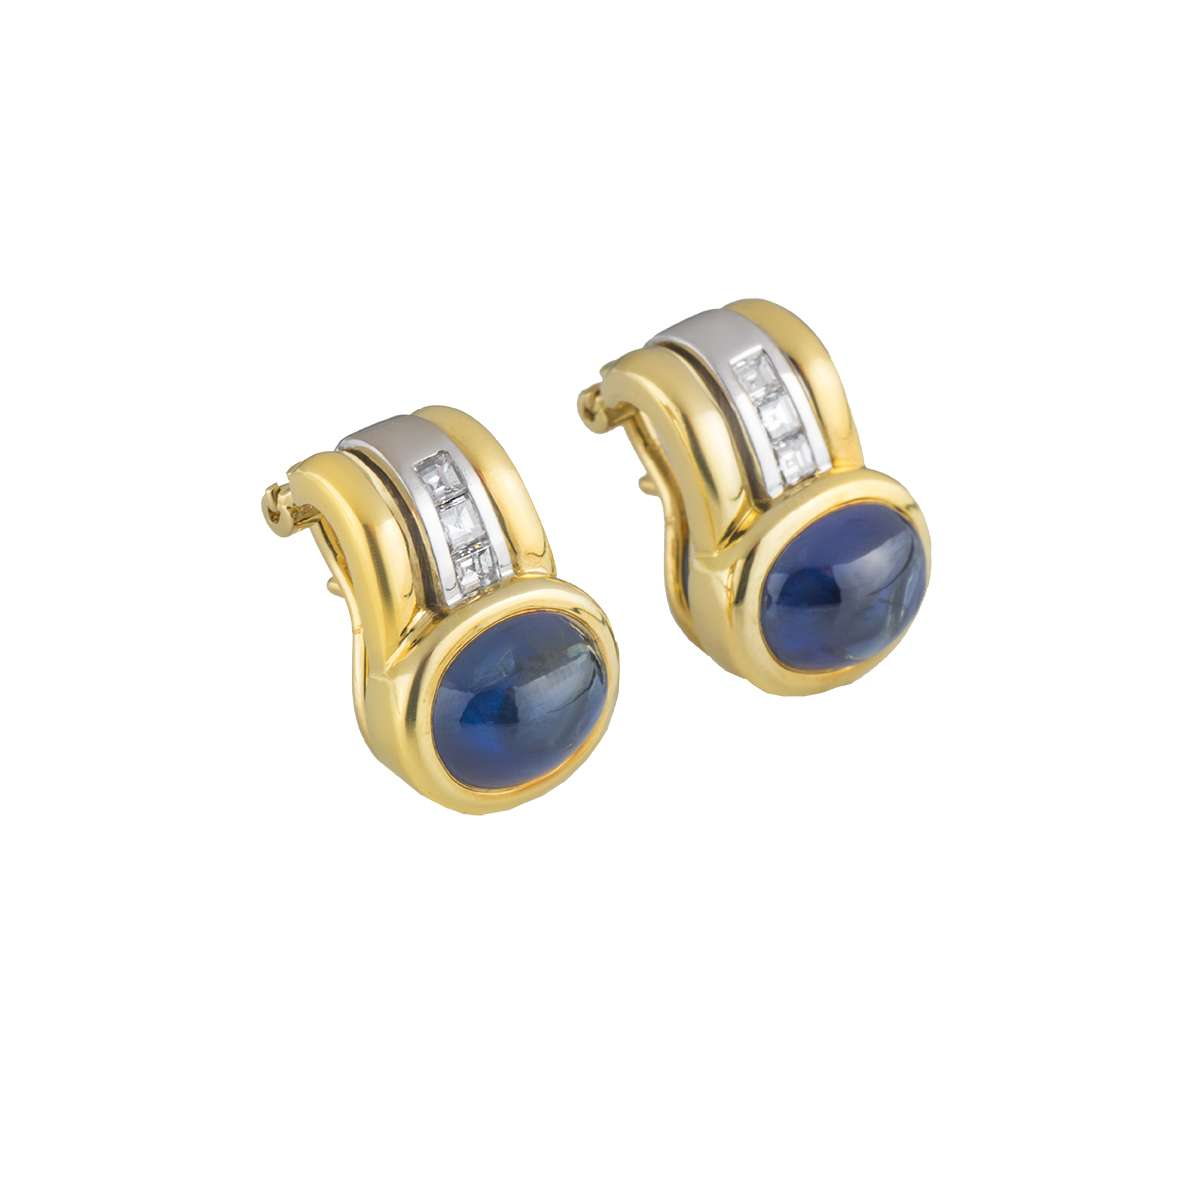 18k Yellow Gold, Diamond and Sapphire Earrings